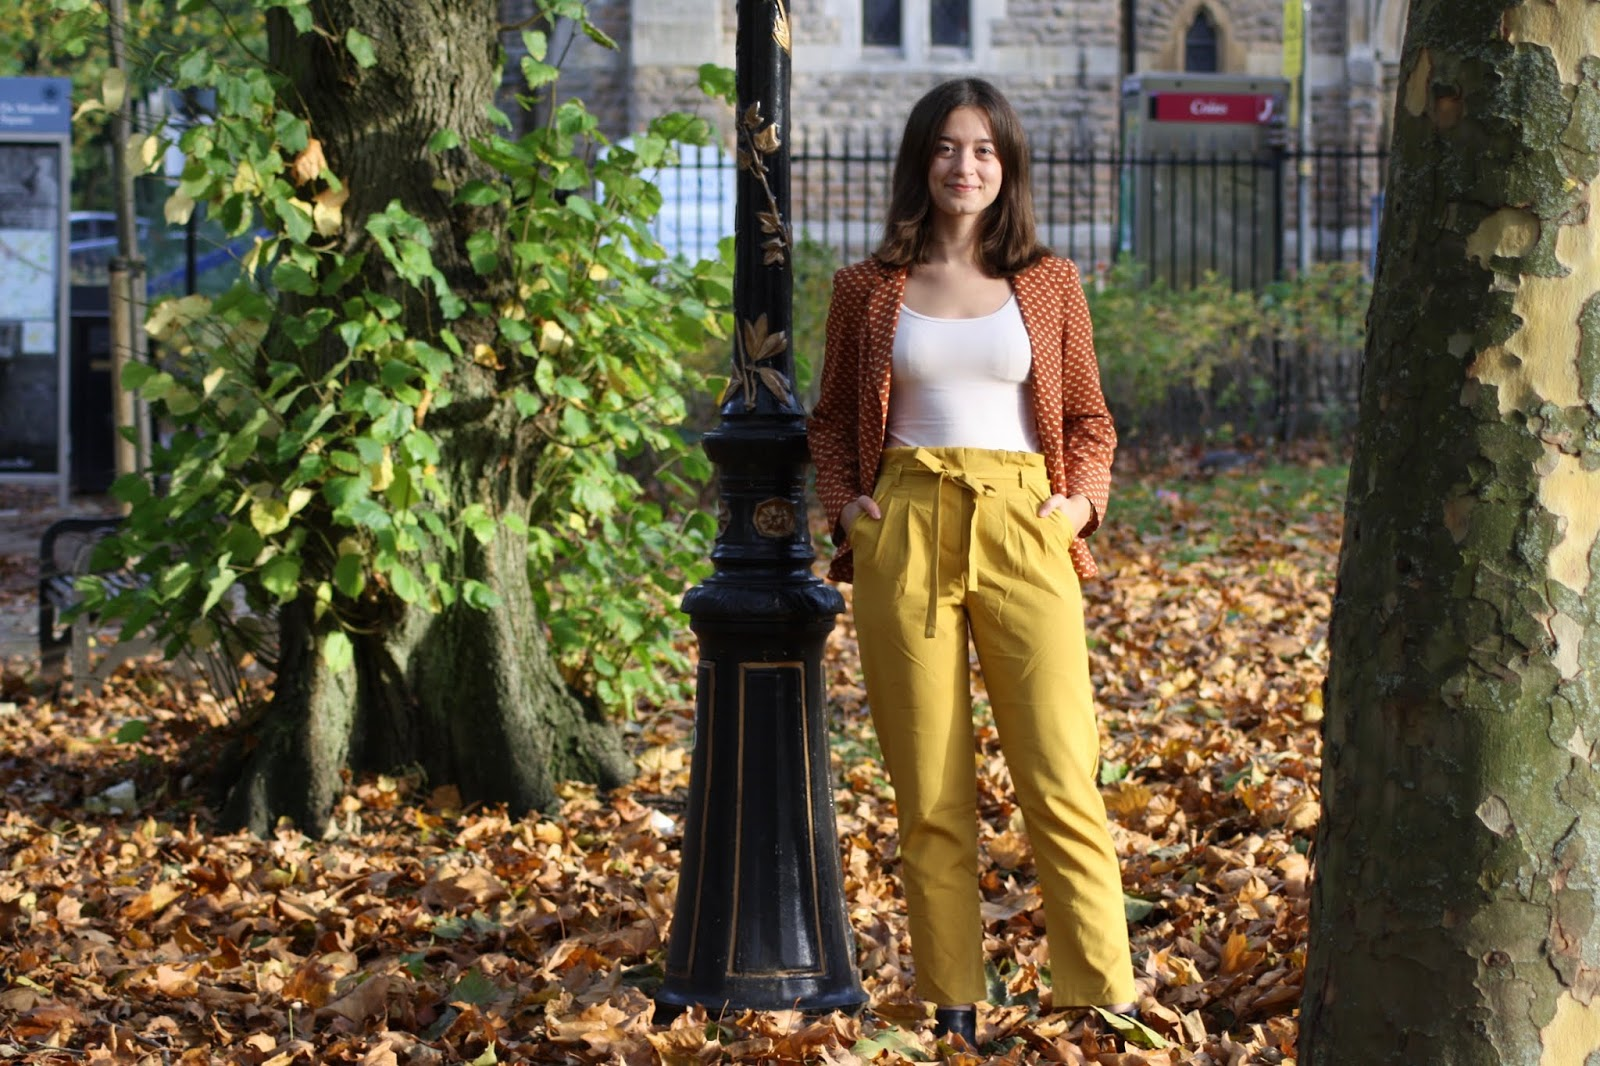 Abbey stands in a park scattered with autumn leaves, her hands in the pockets of her yellow trousers